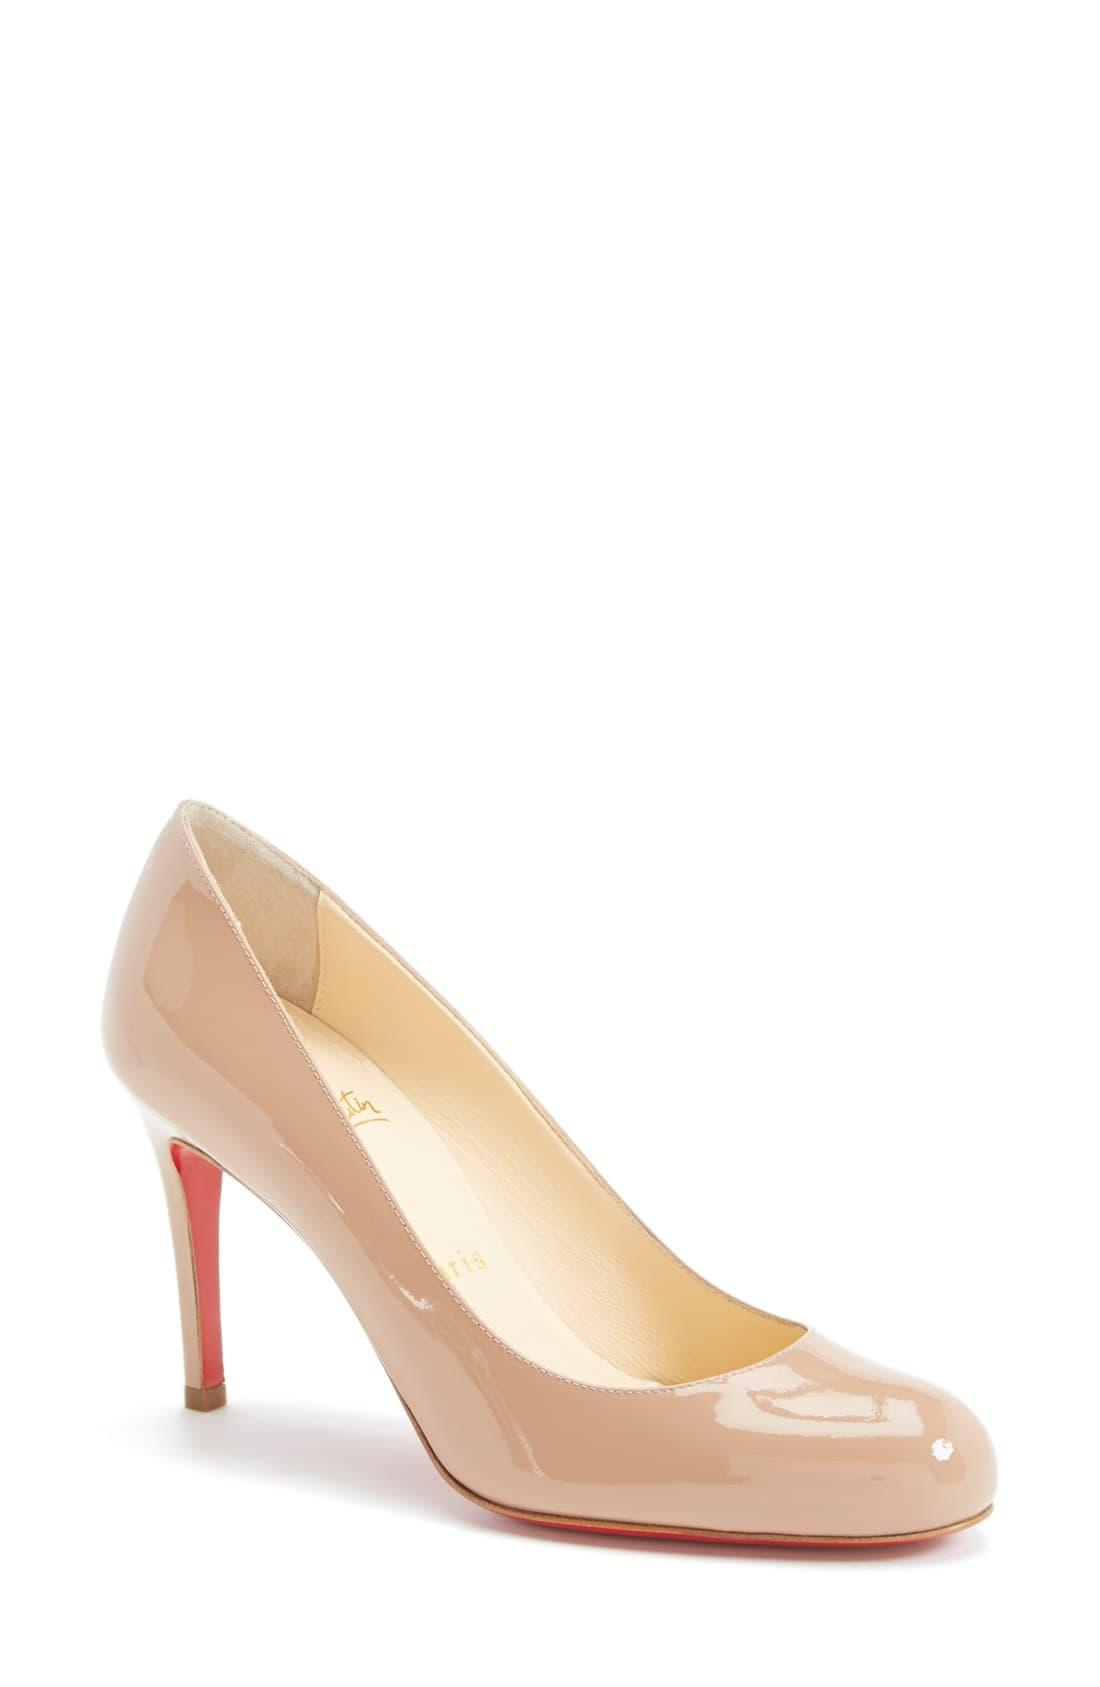 d6e469acad Christian Louboutin Simple Pump in Natural - Save 3% - Lyst